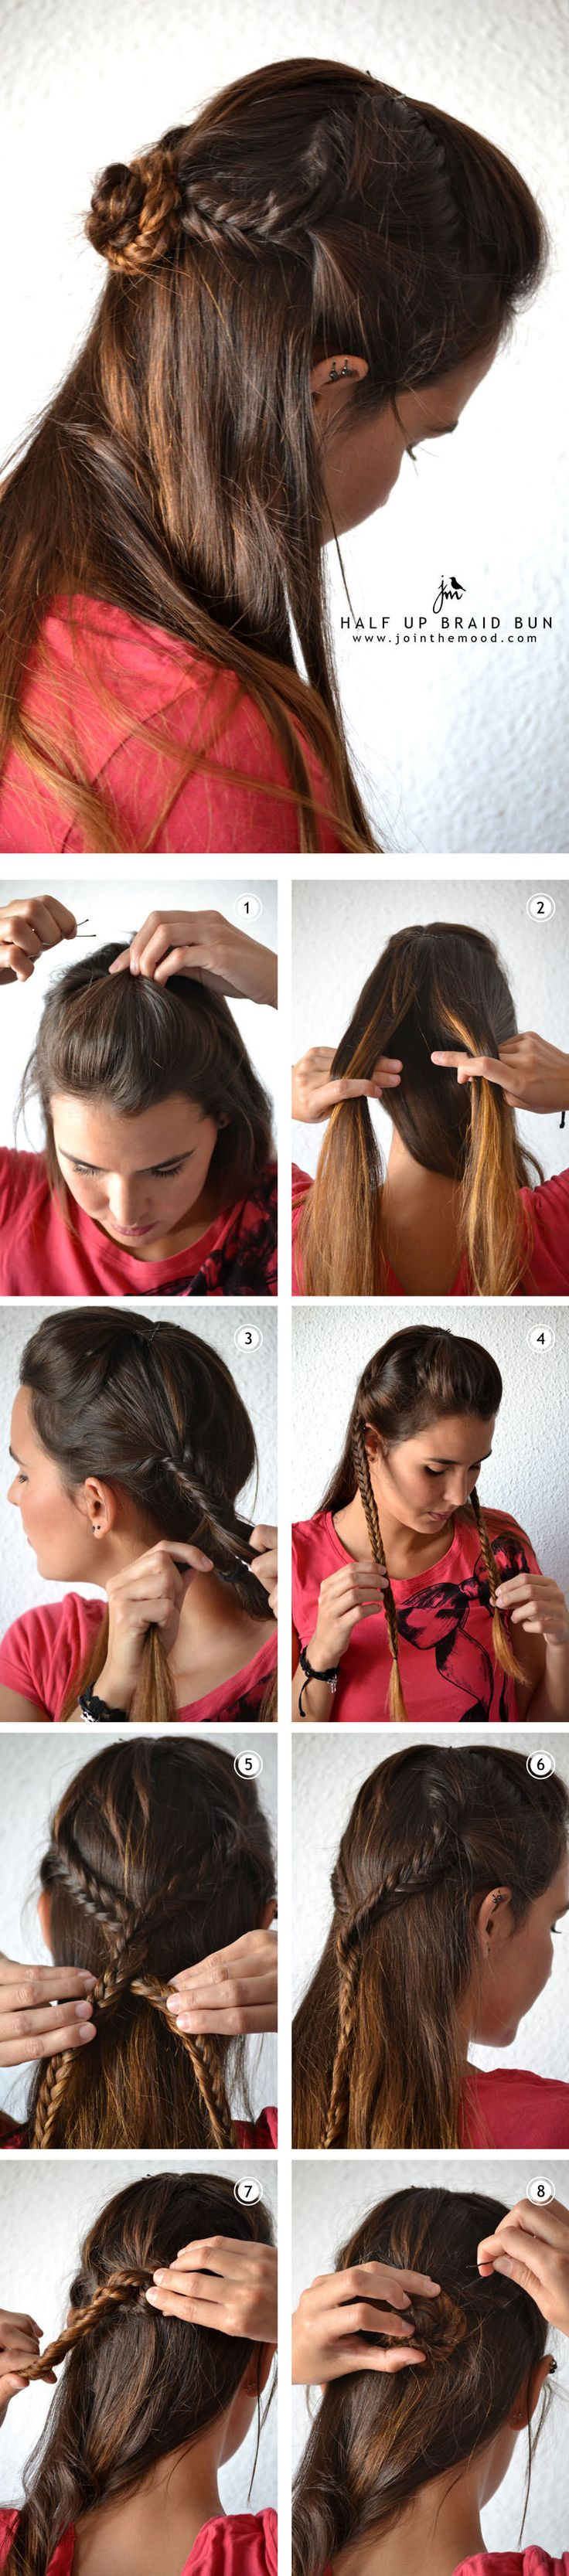 108 best Half Up Half Down Looks images on Pinterest